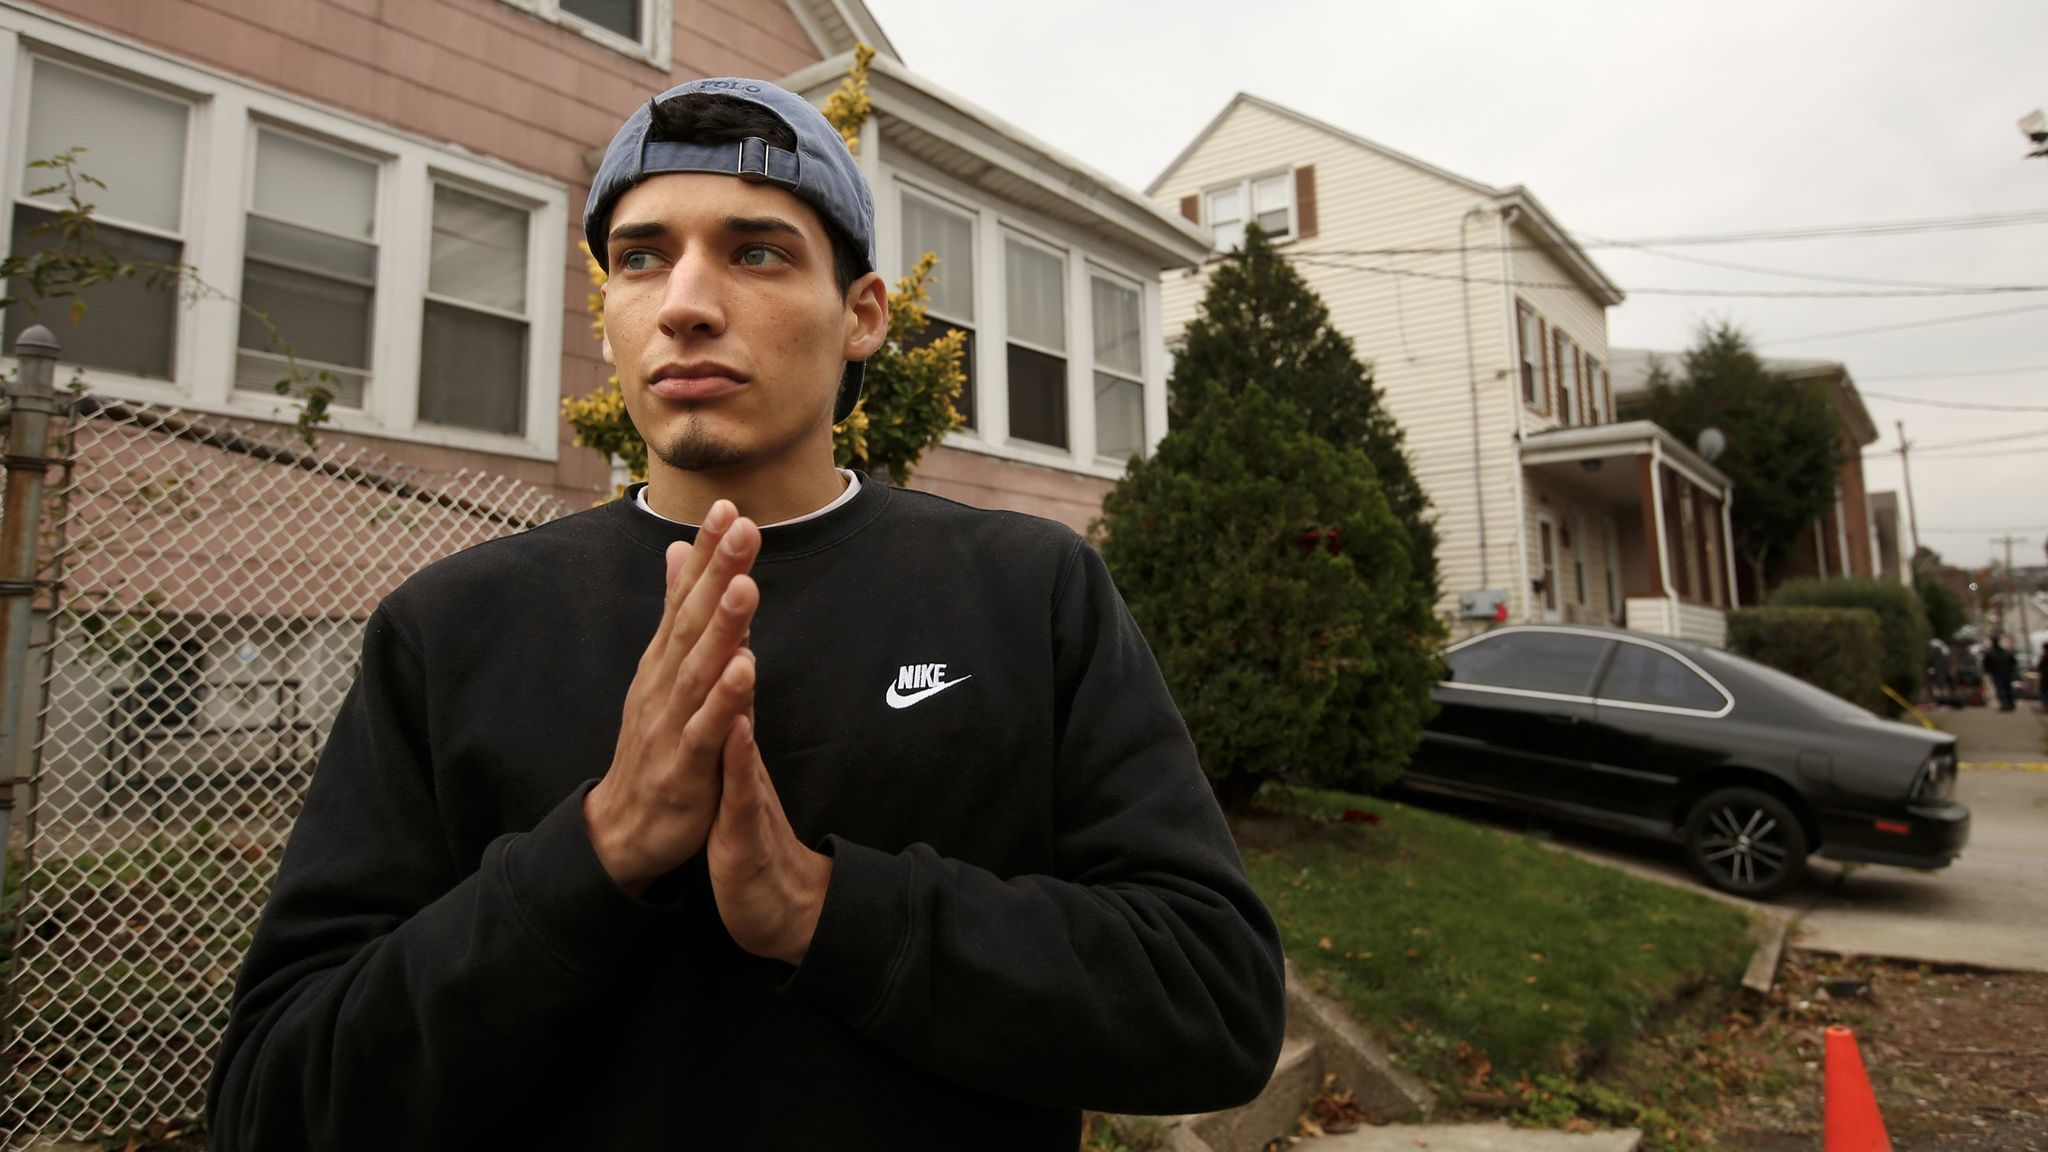 Carlos Batista, 23, lived two houses away from Sayfullo Saipov in Paterson, N.J.